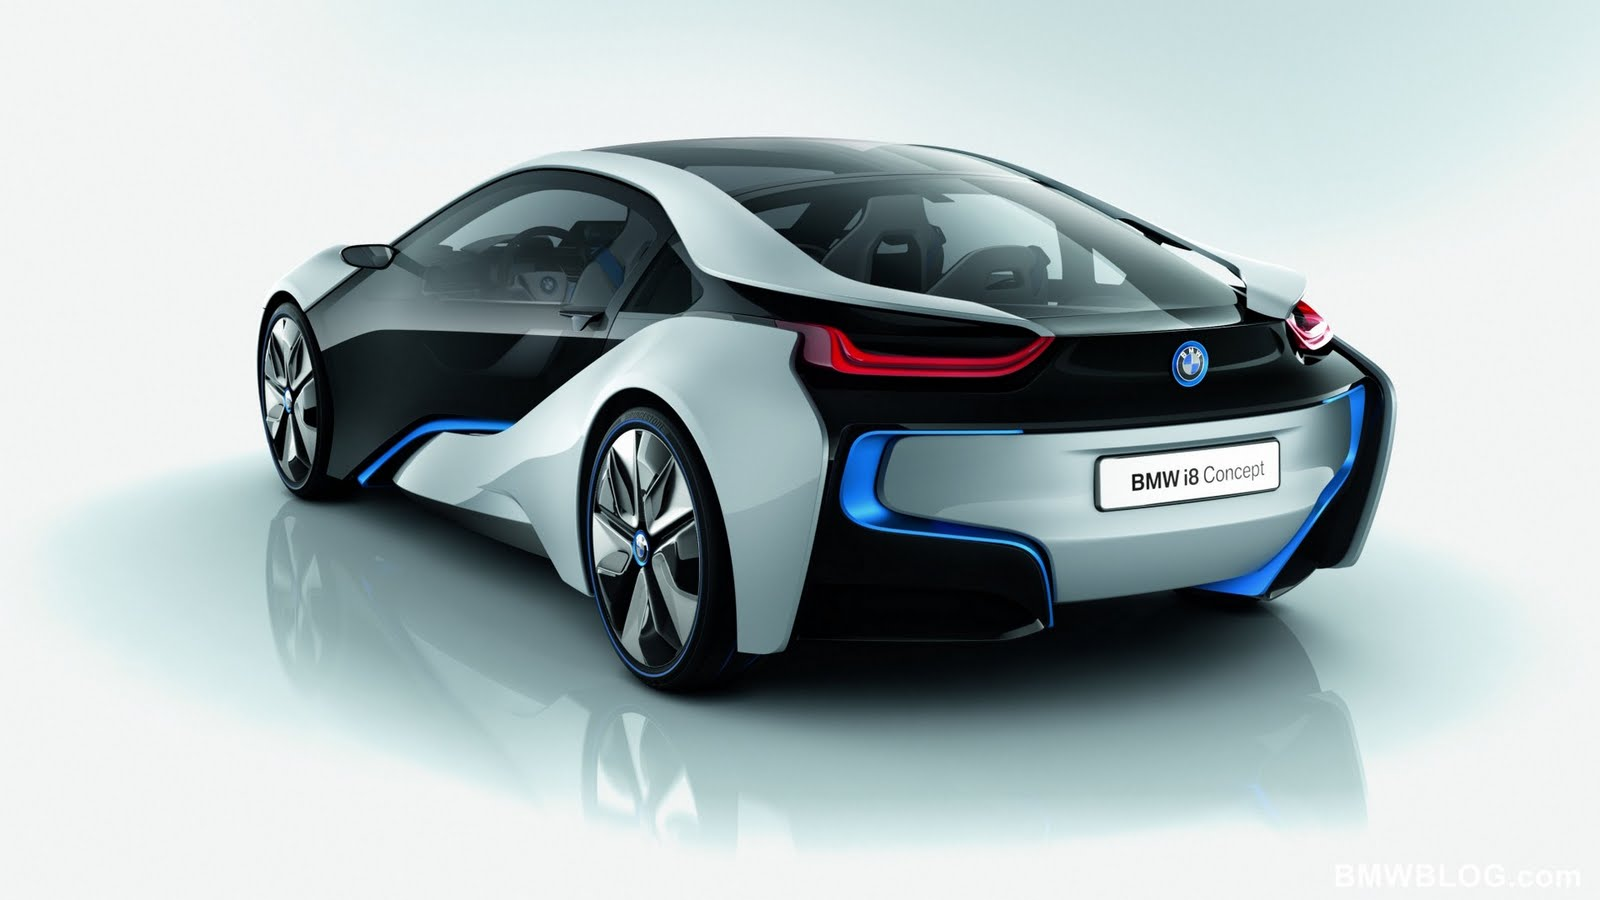 2013 bmw i8 concept fast speedy cars. Black Bedroom Furniture Sets. Home Design Ideas